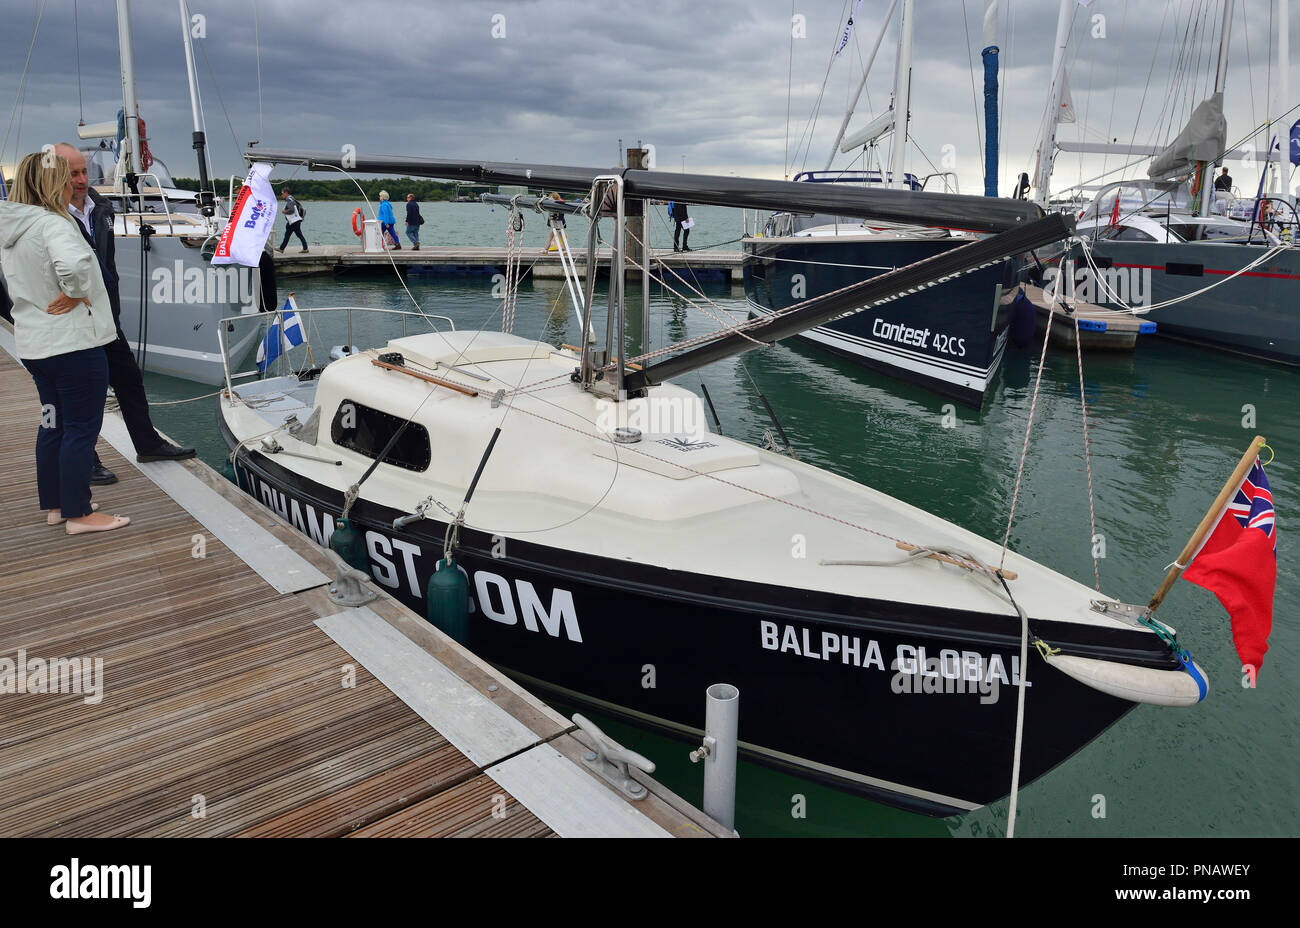 Balpha Global at the Southampton Boat Show 2018 with its Balpha Mast foldable mast system for yachts which allows for easy lowering & raising of masts Stock Photo